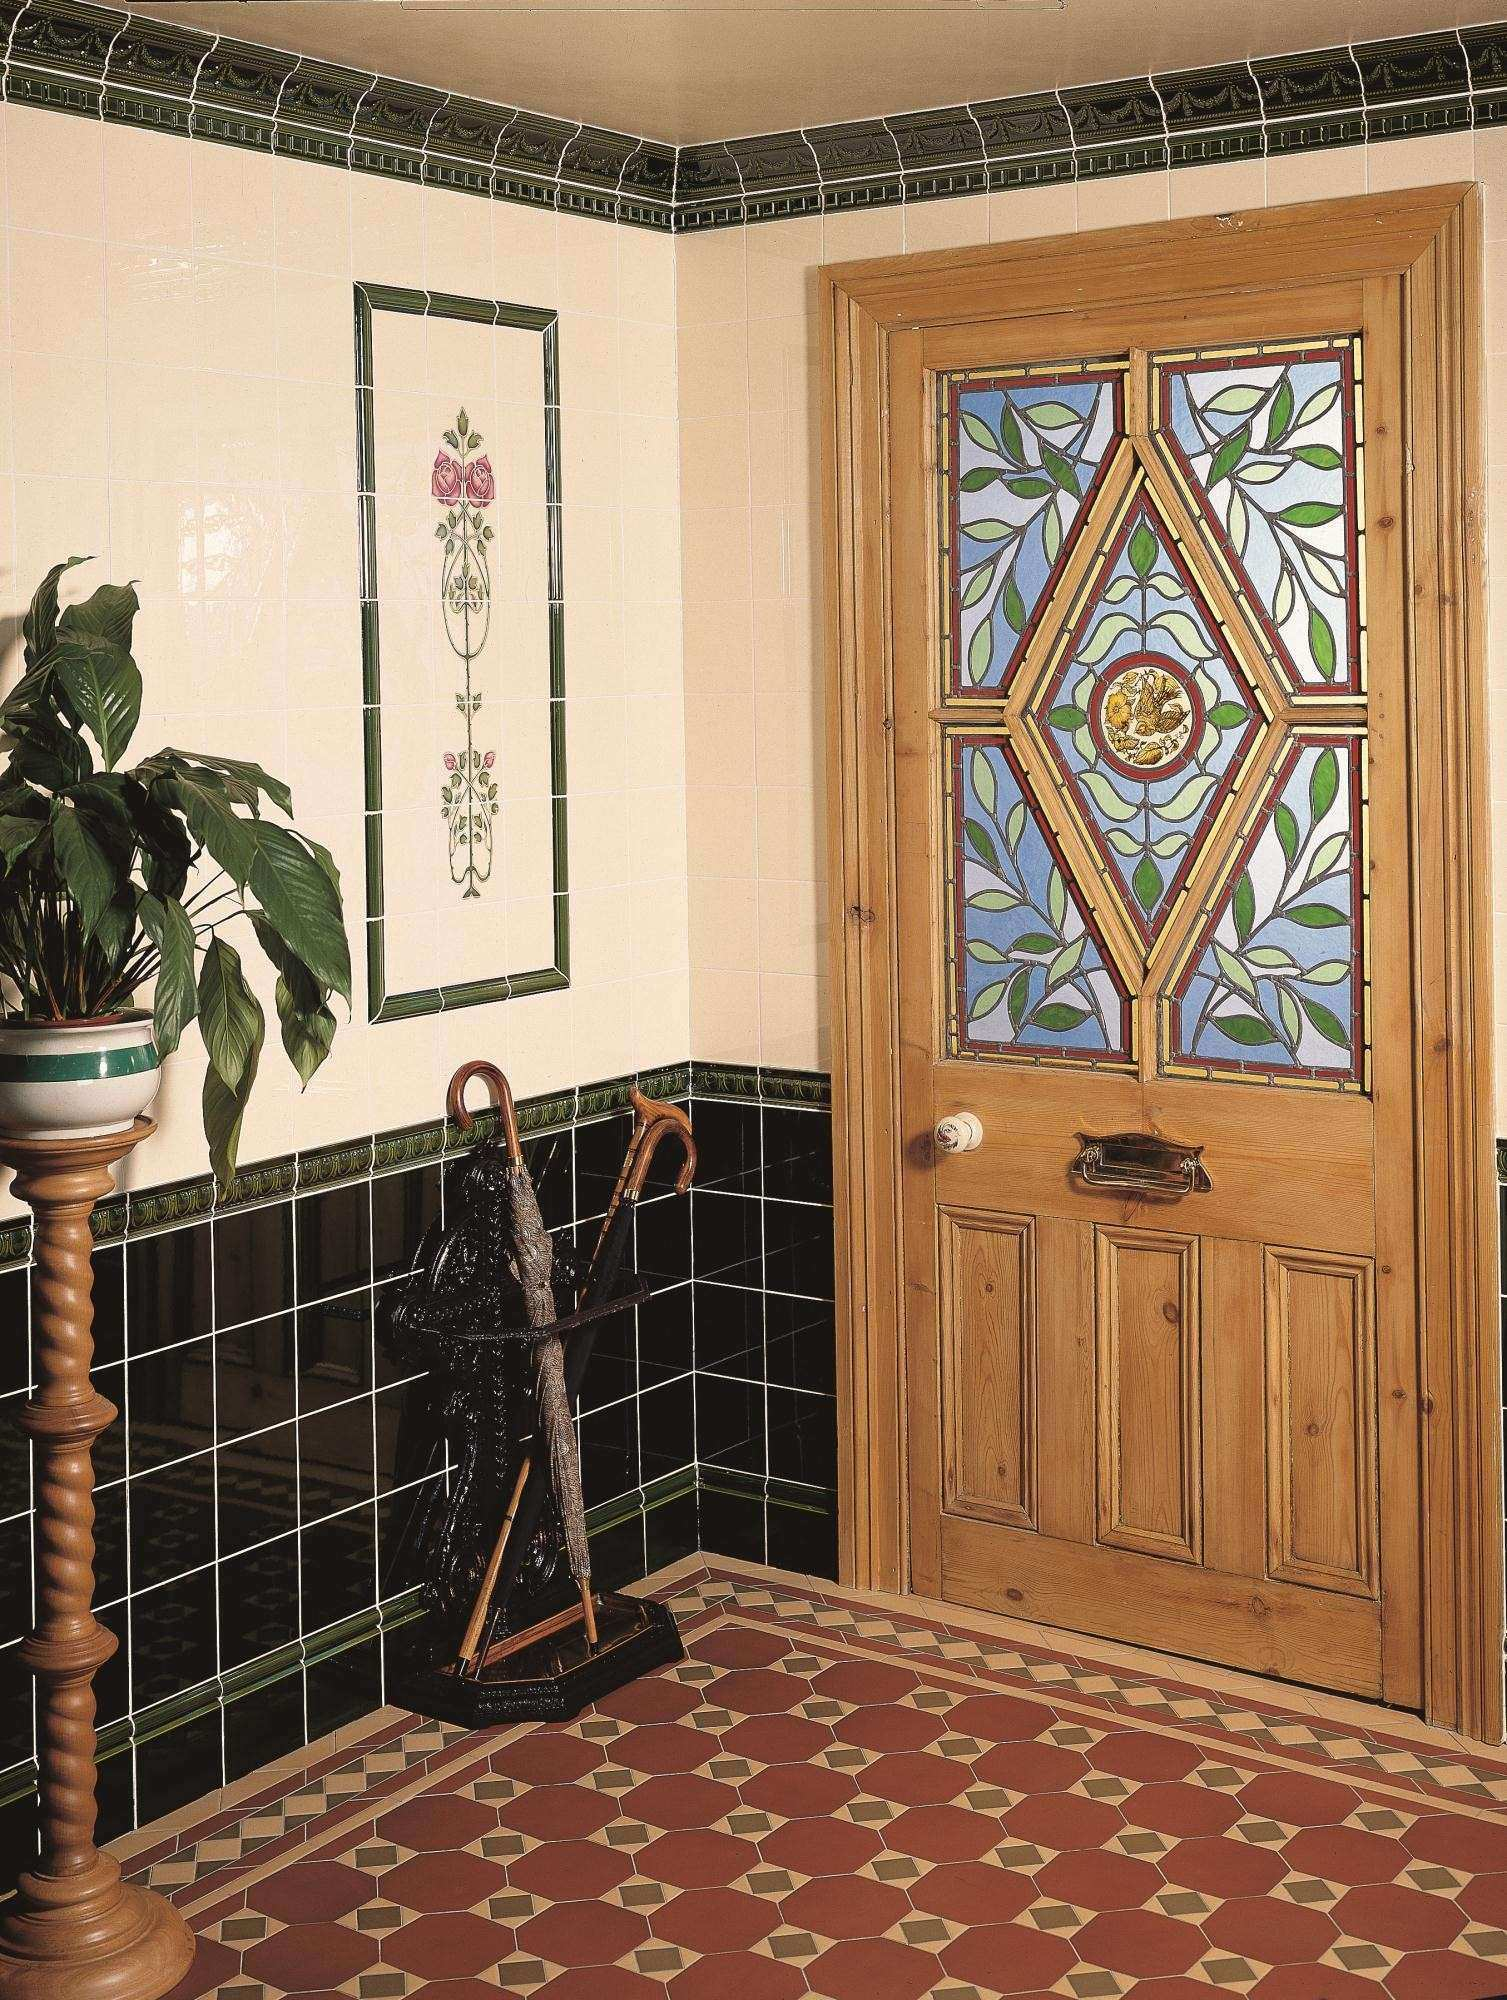 Pictures for Hallway Walls Fresh Victorian Green Skirting Tile